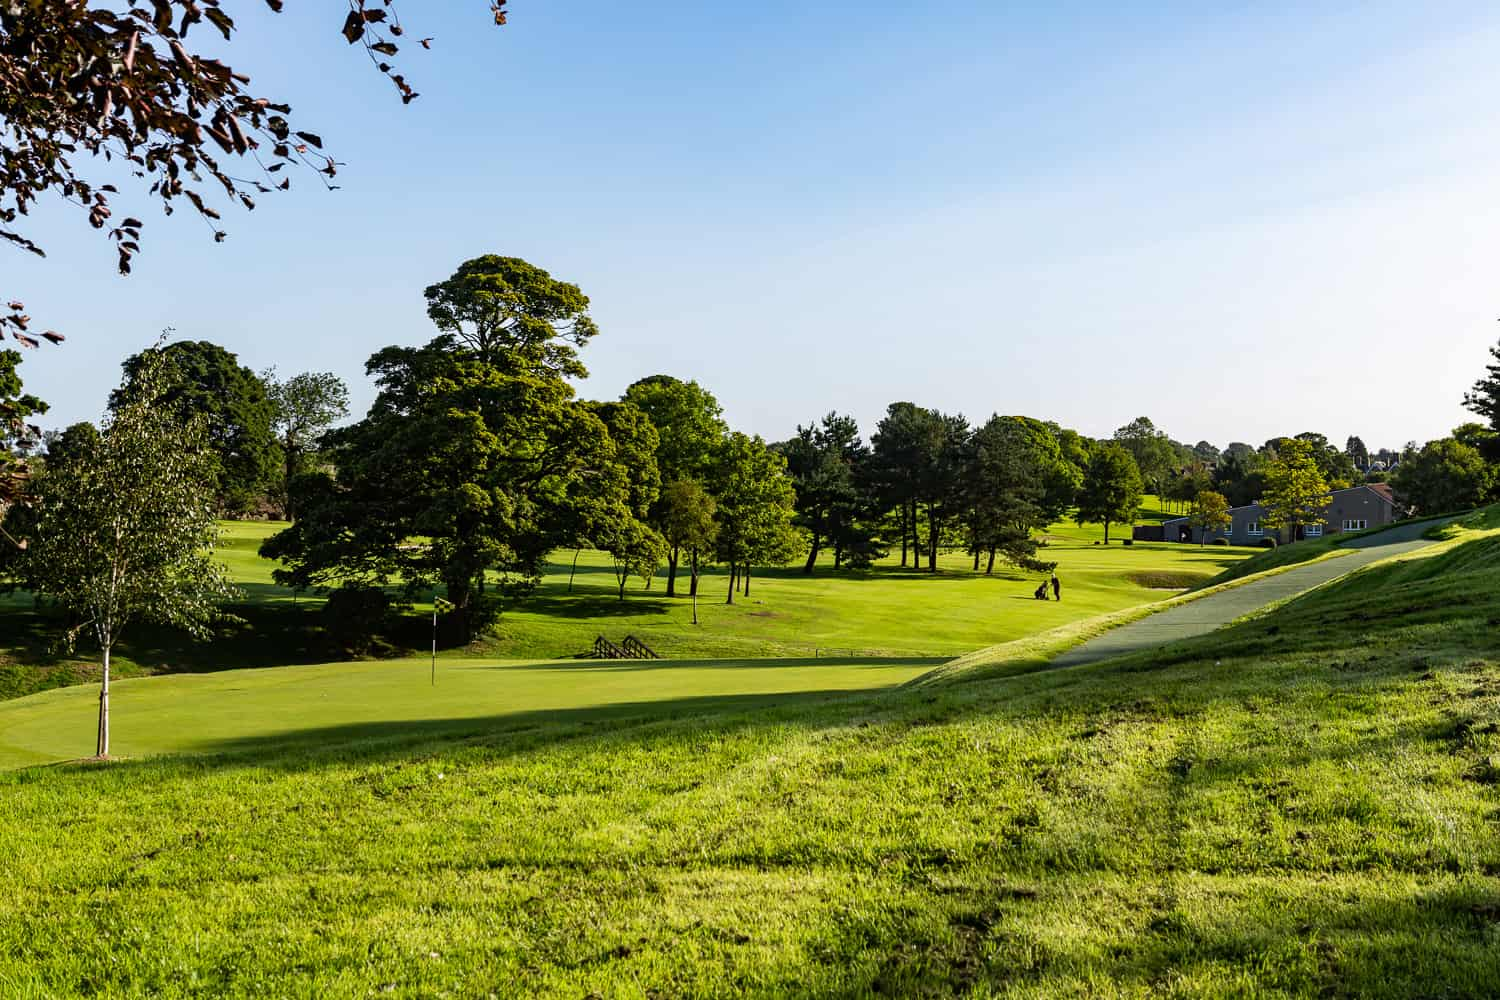 Uphall_Golf_Club_Course_Images (6 of 32)